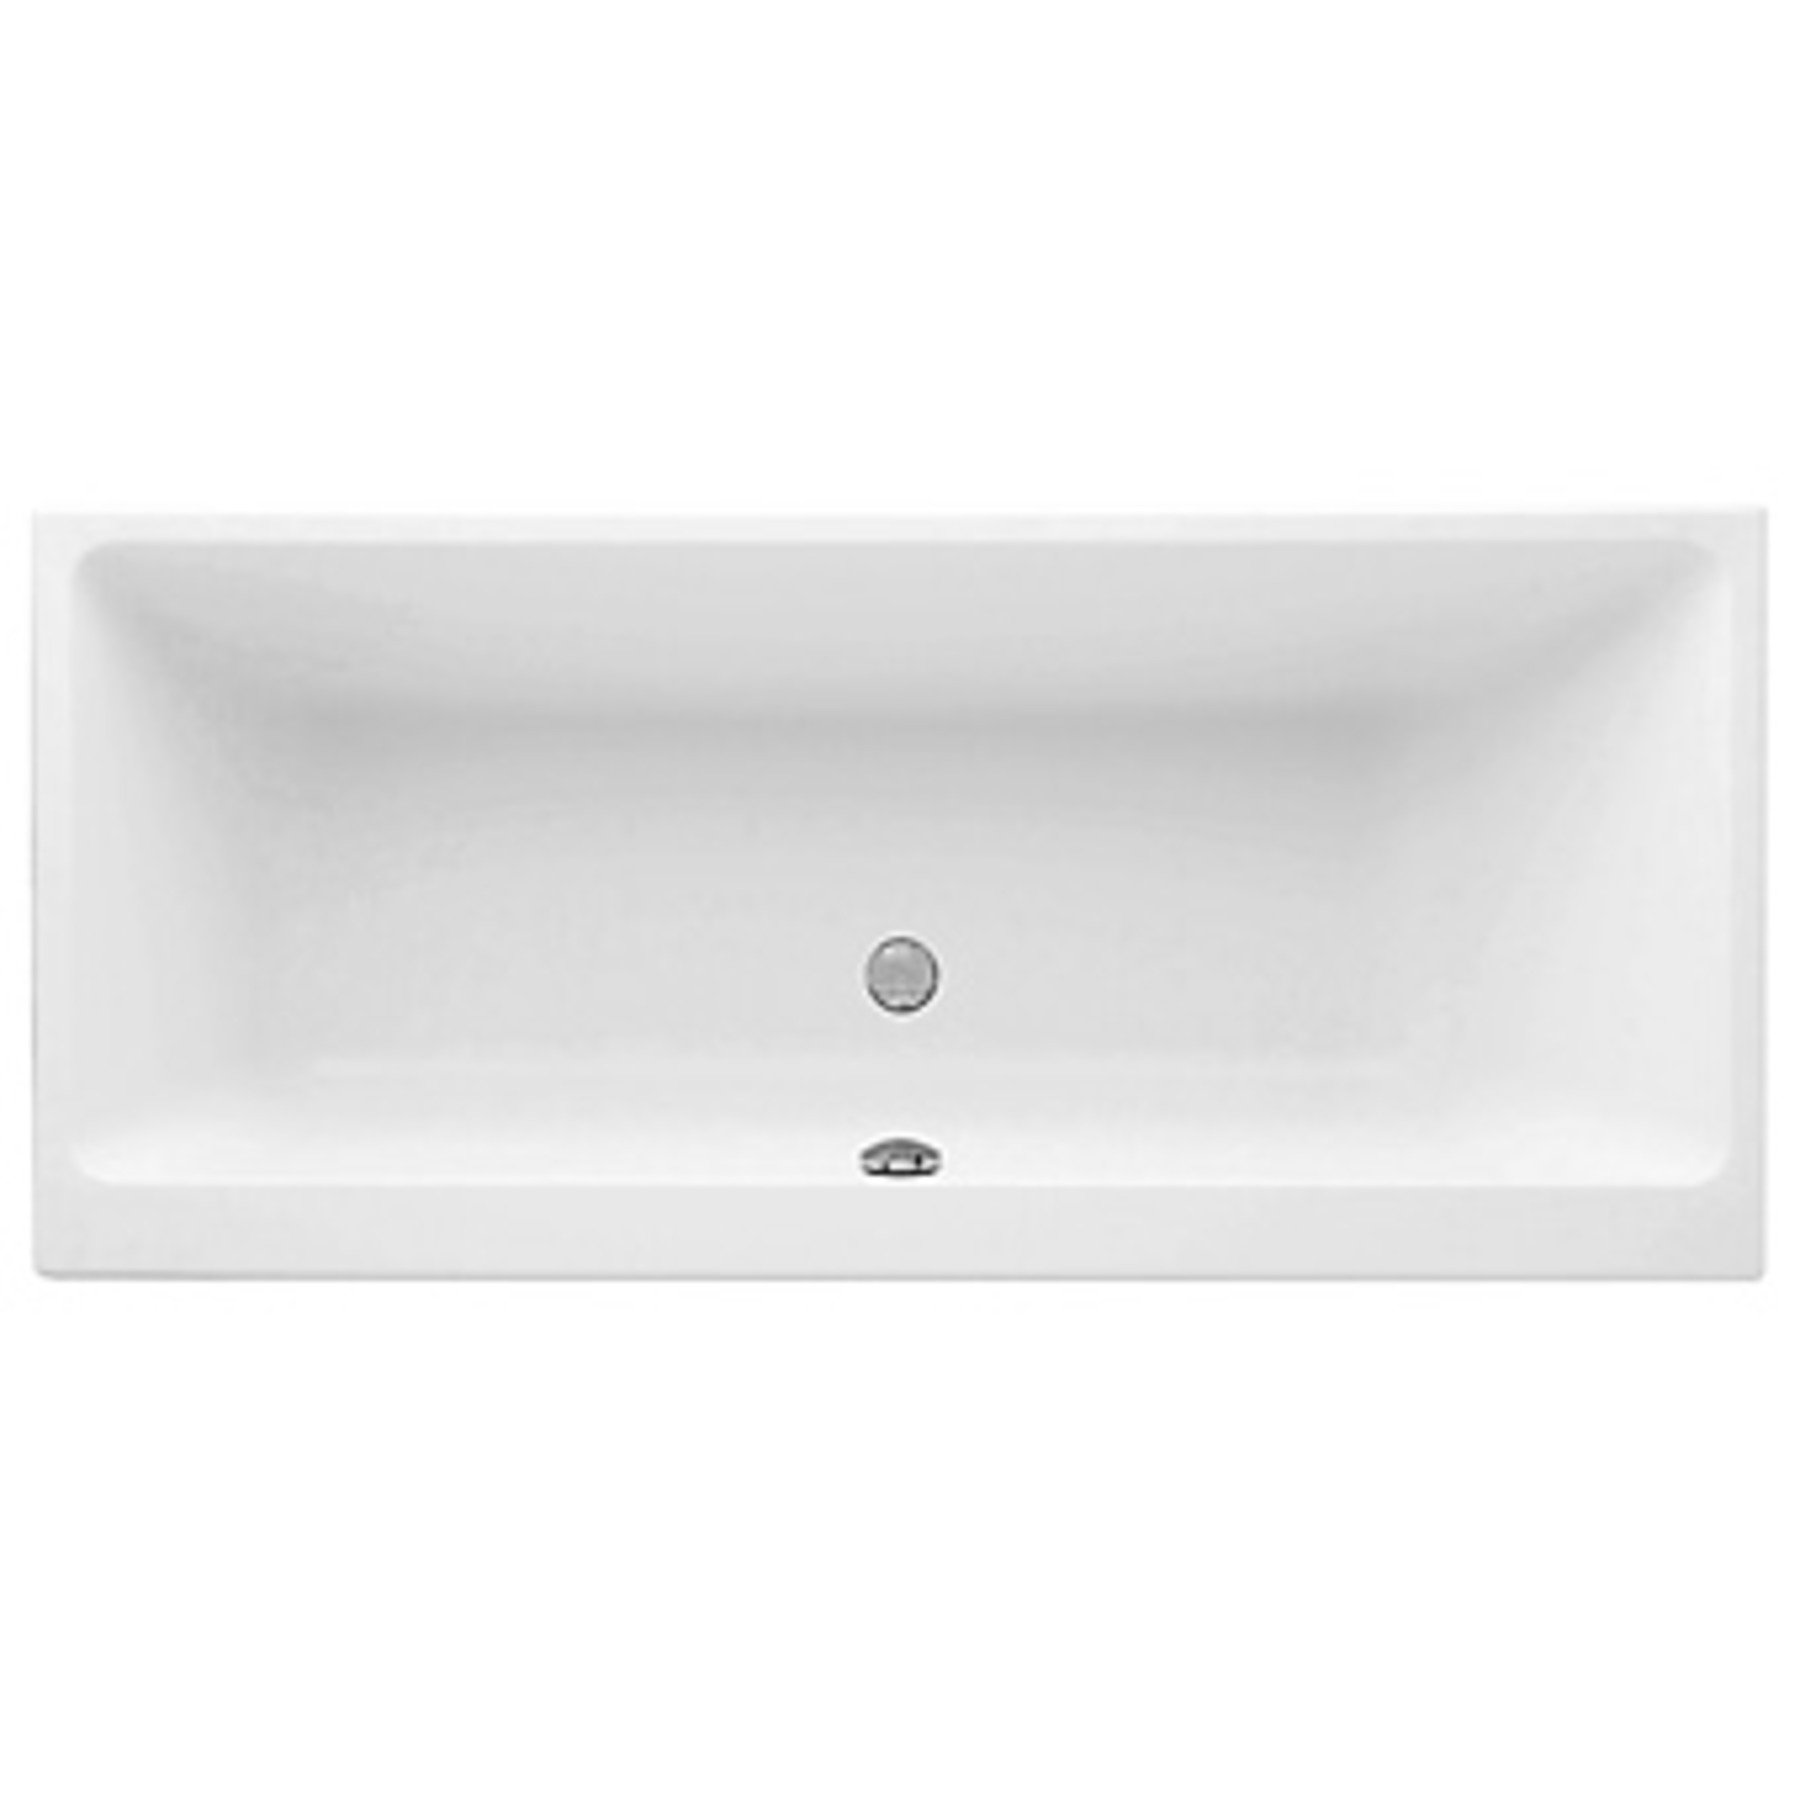 Villeroy en Boch Subway bad 180x80cm acryl wit